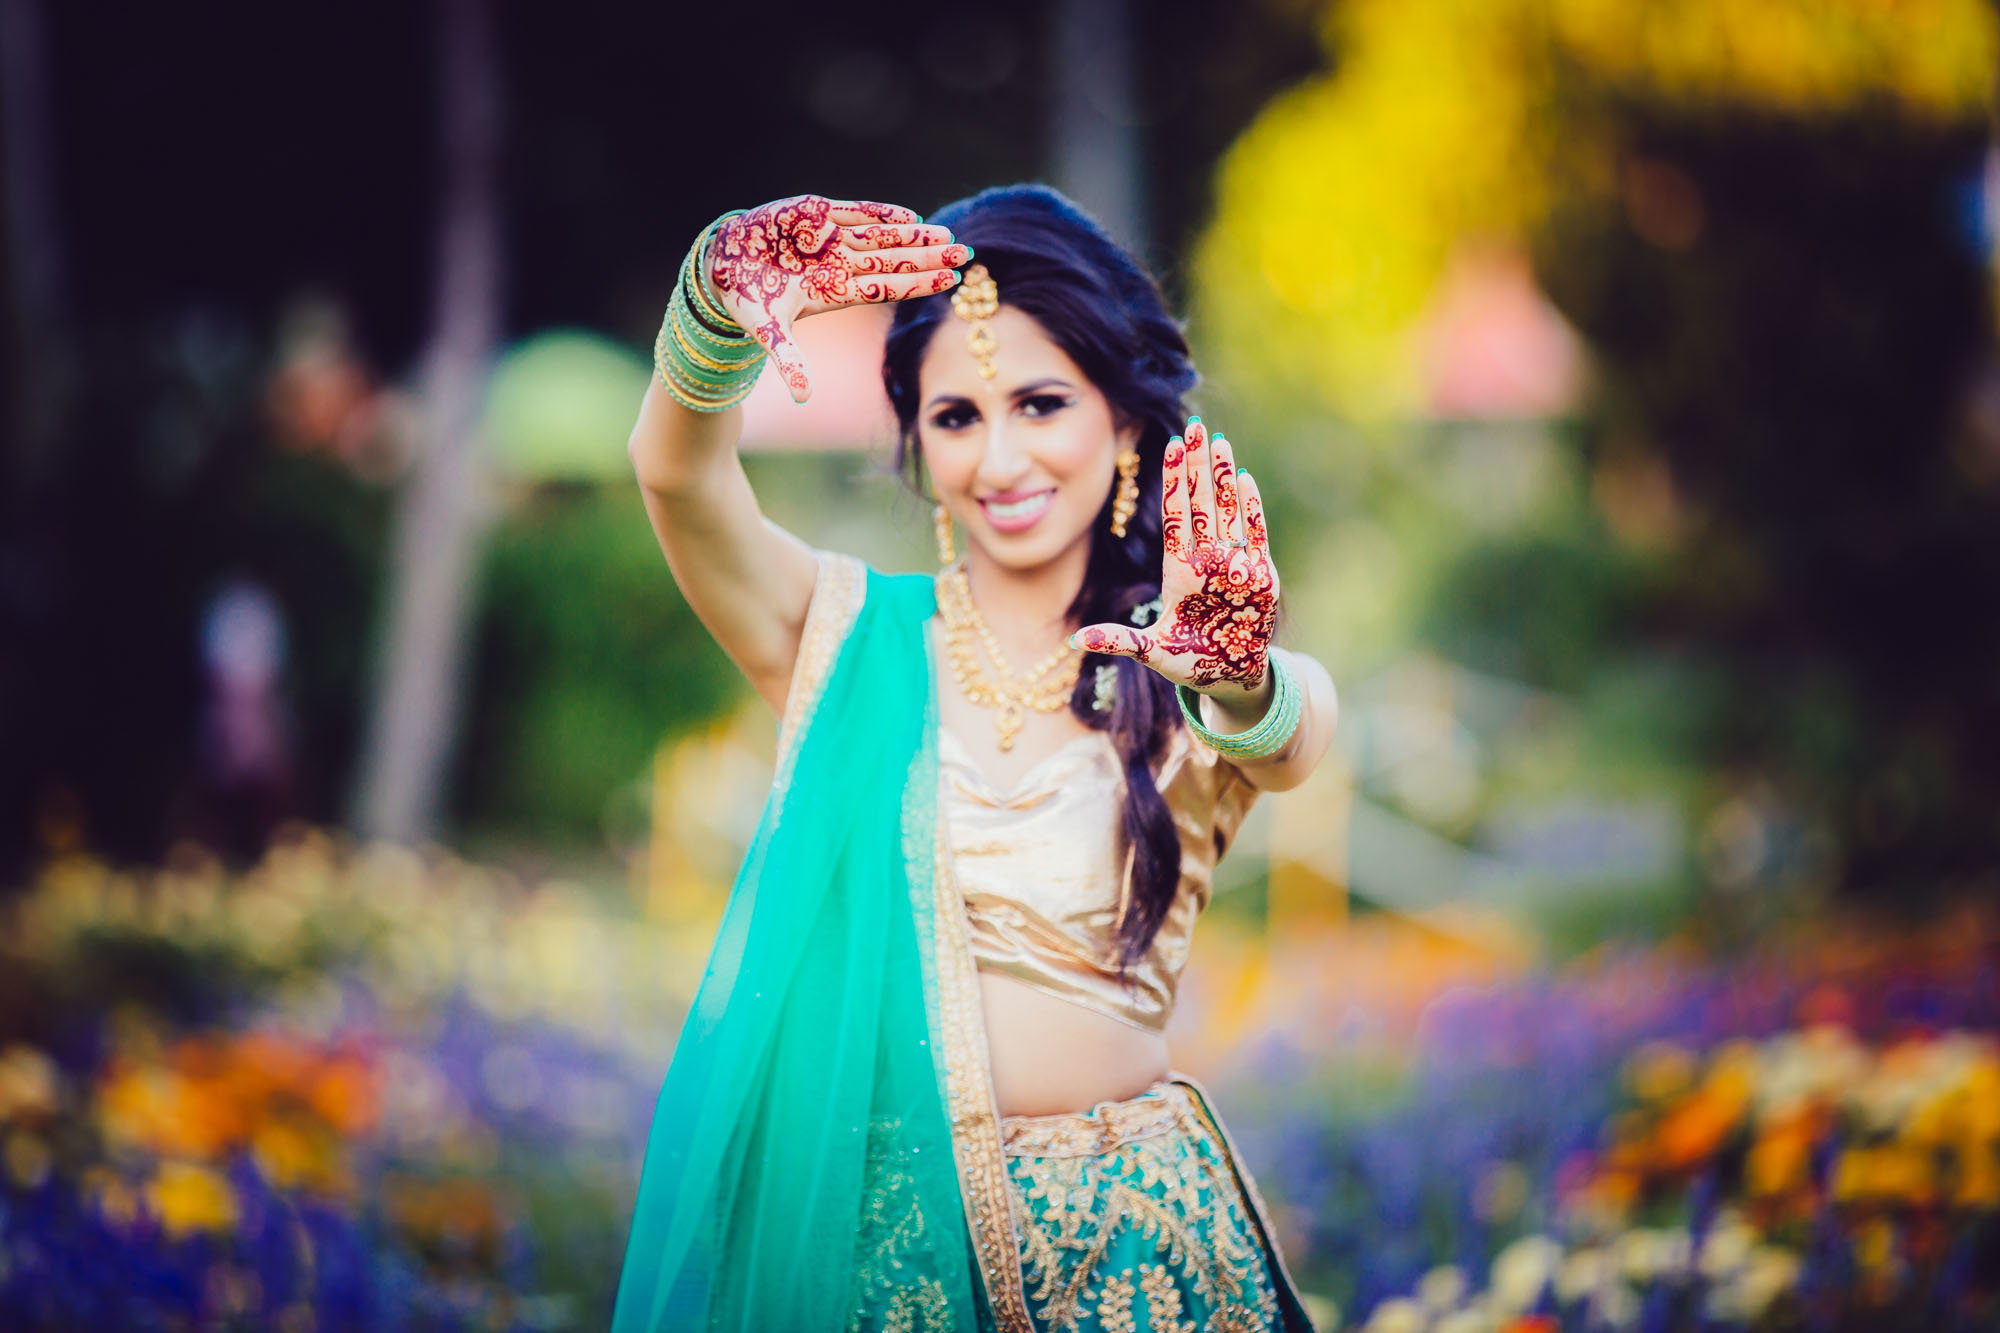 Ashmini_Shemsher_Indian_Engagement_Party_Ceremony_Portraits_BrisbaneCity_AnnaOsetroff_Photographer_Factory51_Reception_Web-32